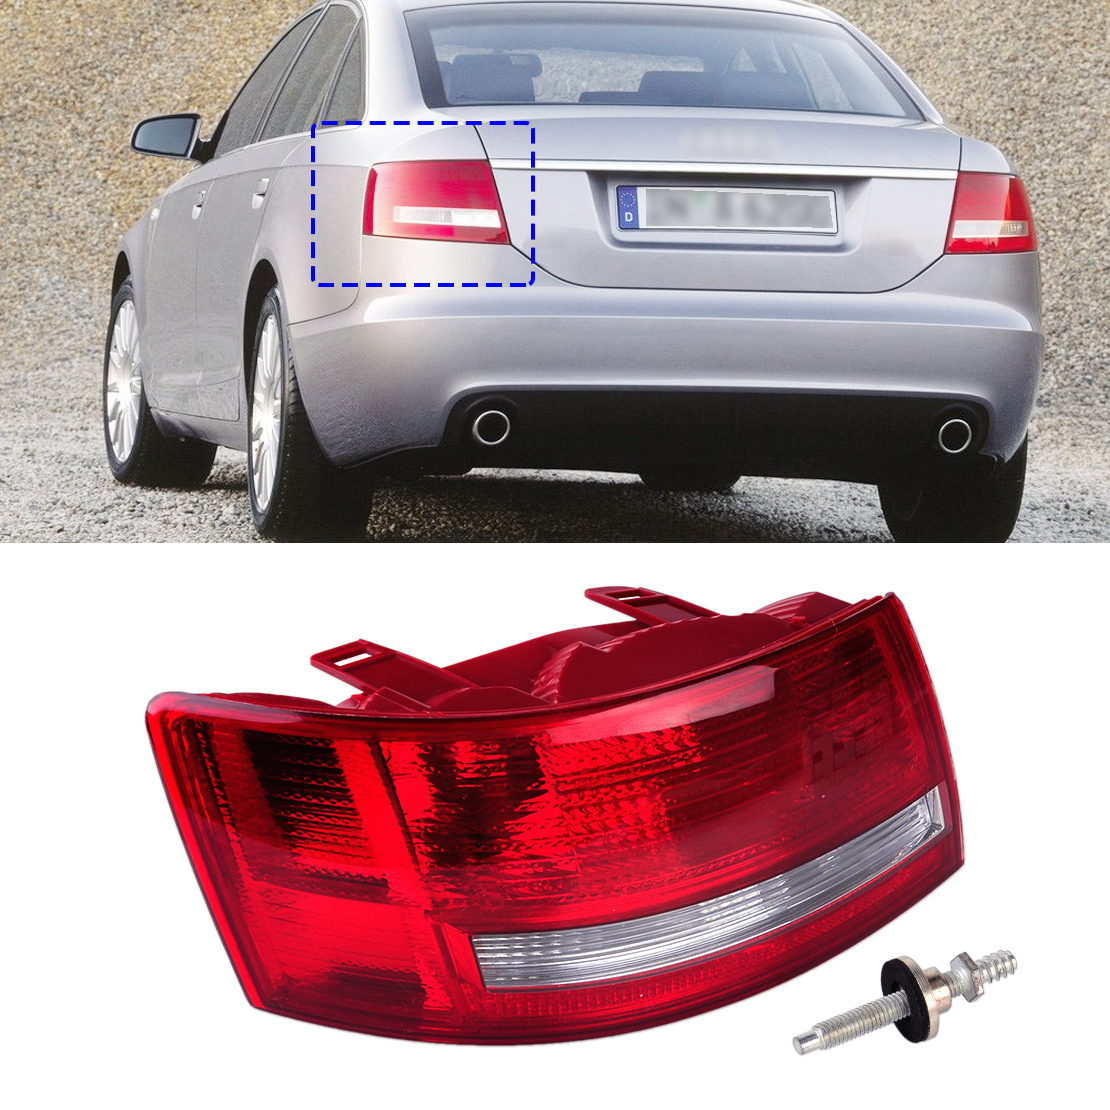 DWCX Rear Tail Left Light Taillight Assembly Lamp Housing without Bulb 4F5 945 095 L for Audi A6 /A6 Quattro Sedan 2005 2006 -08 free shipping for skoda octavia sedan a5 2005 2006 2007 2008 right side rear lamp tail light